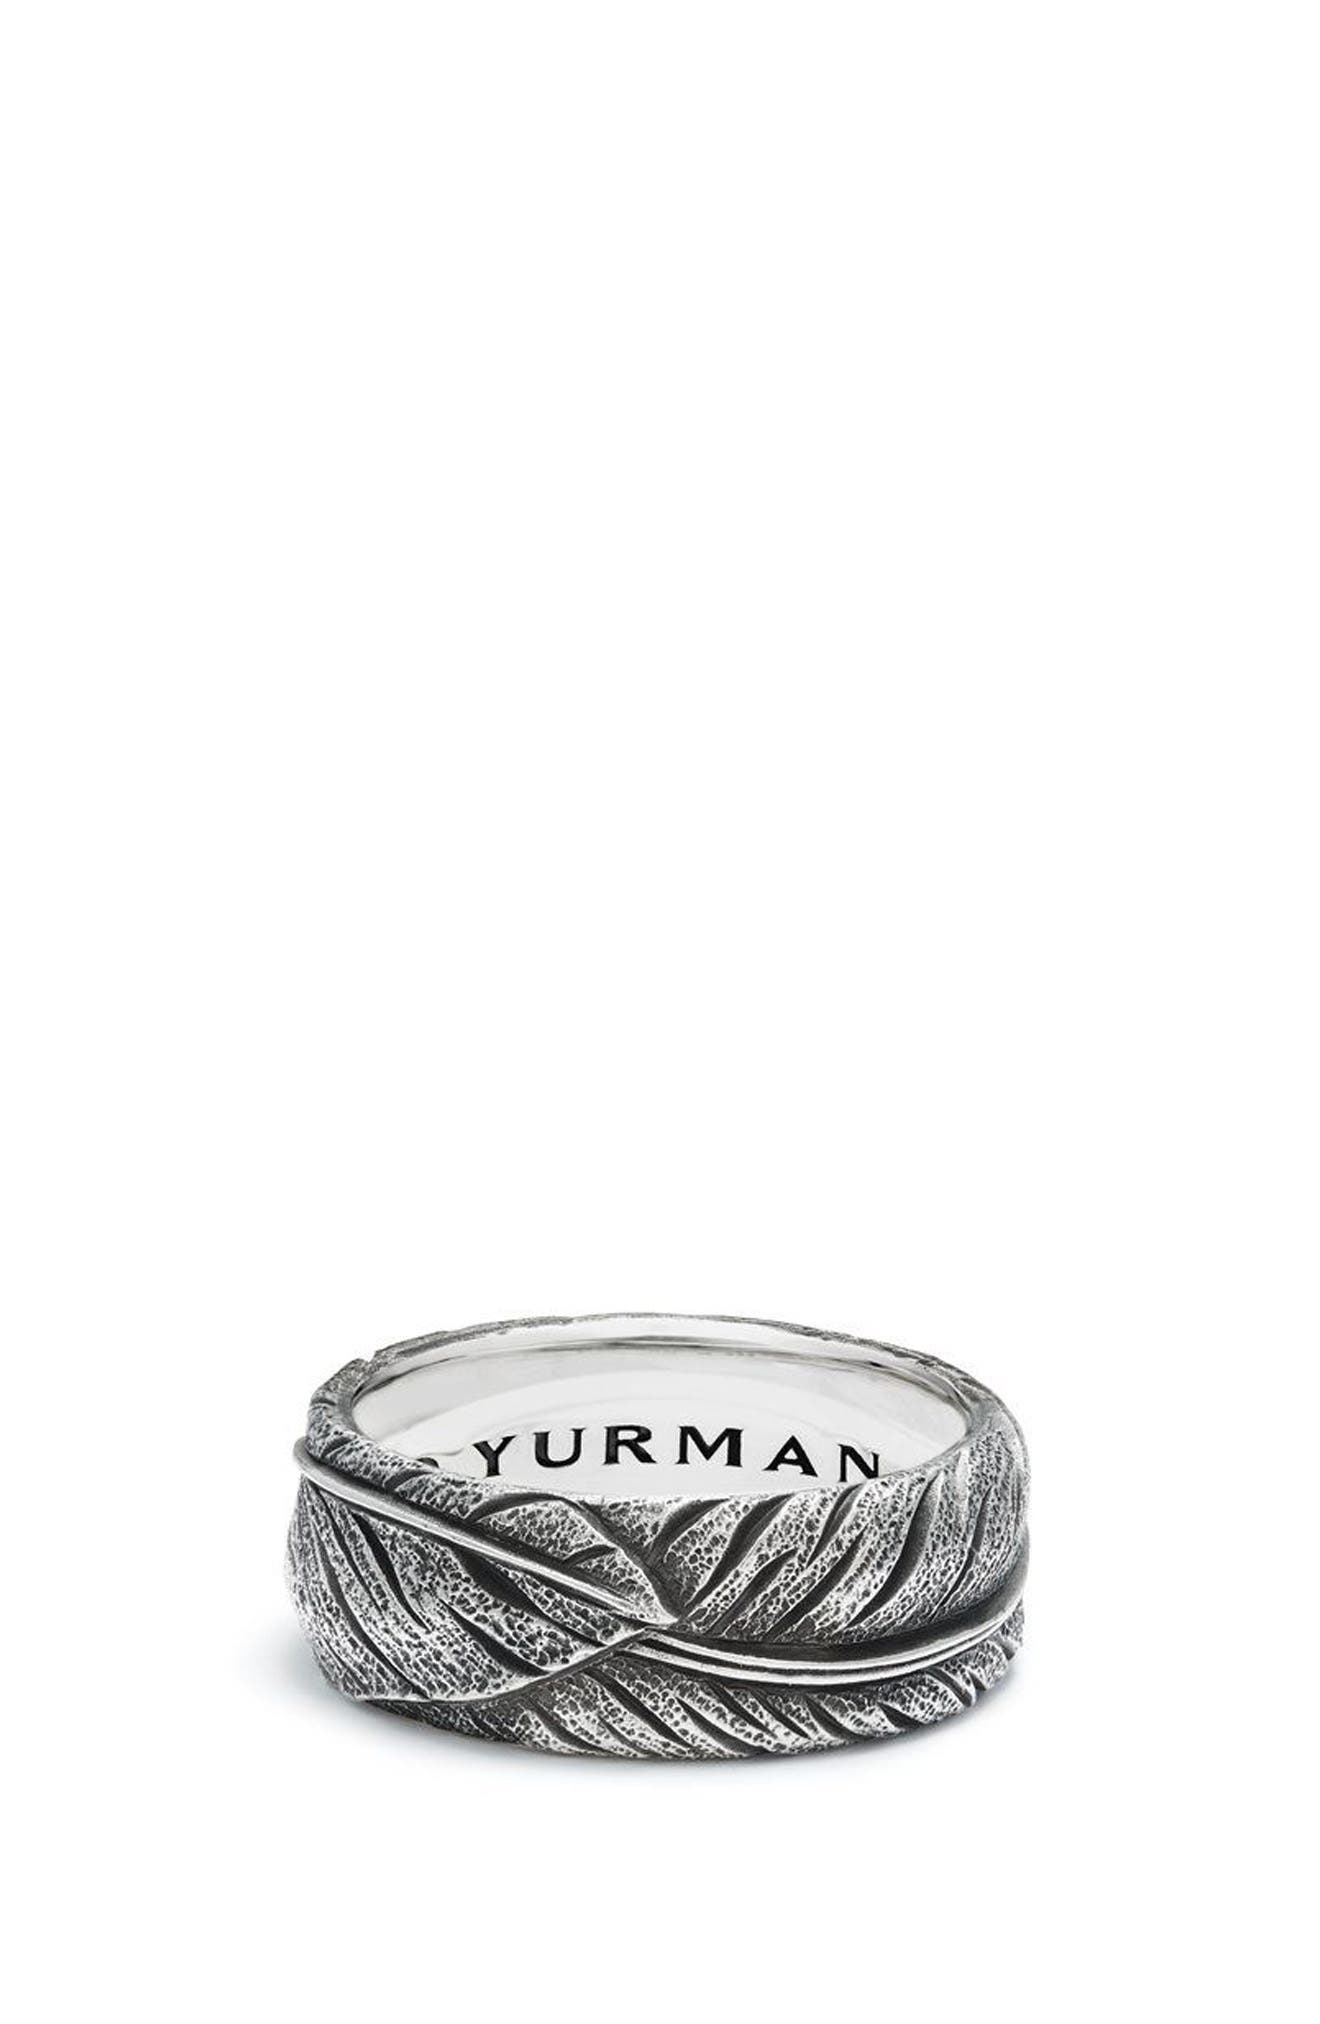 Southwest Narrow Feather Band Ring,                         Main,                         color, Silver